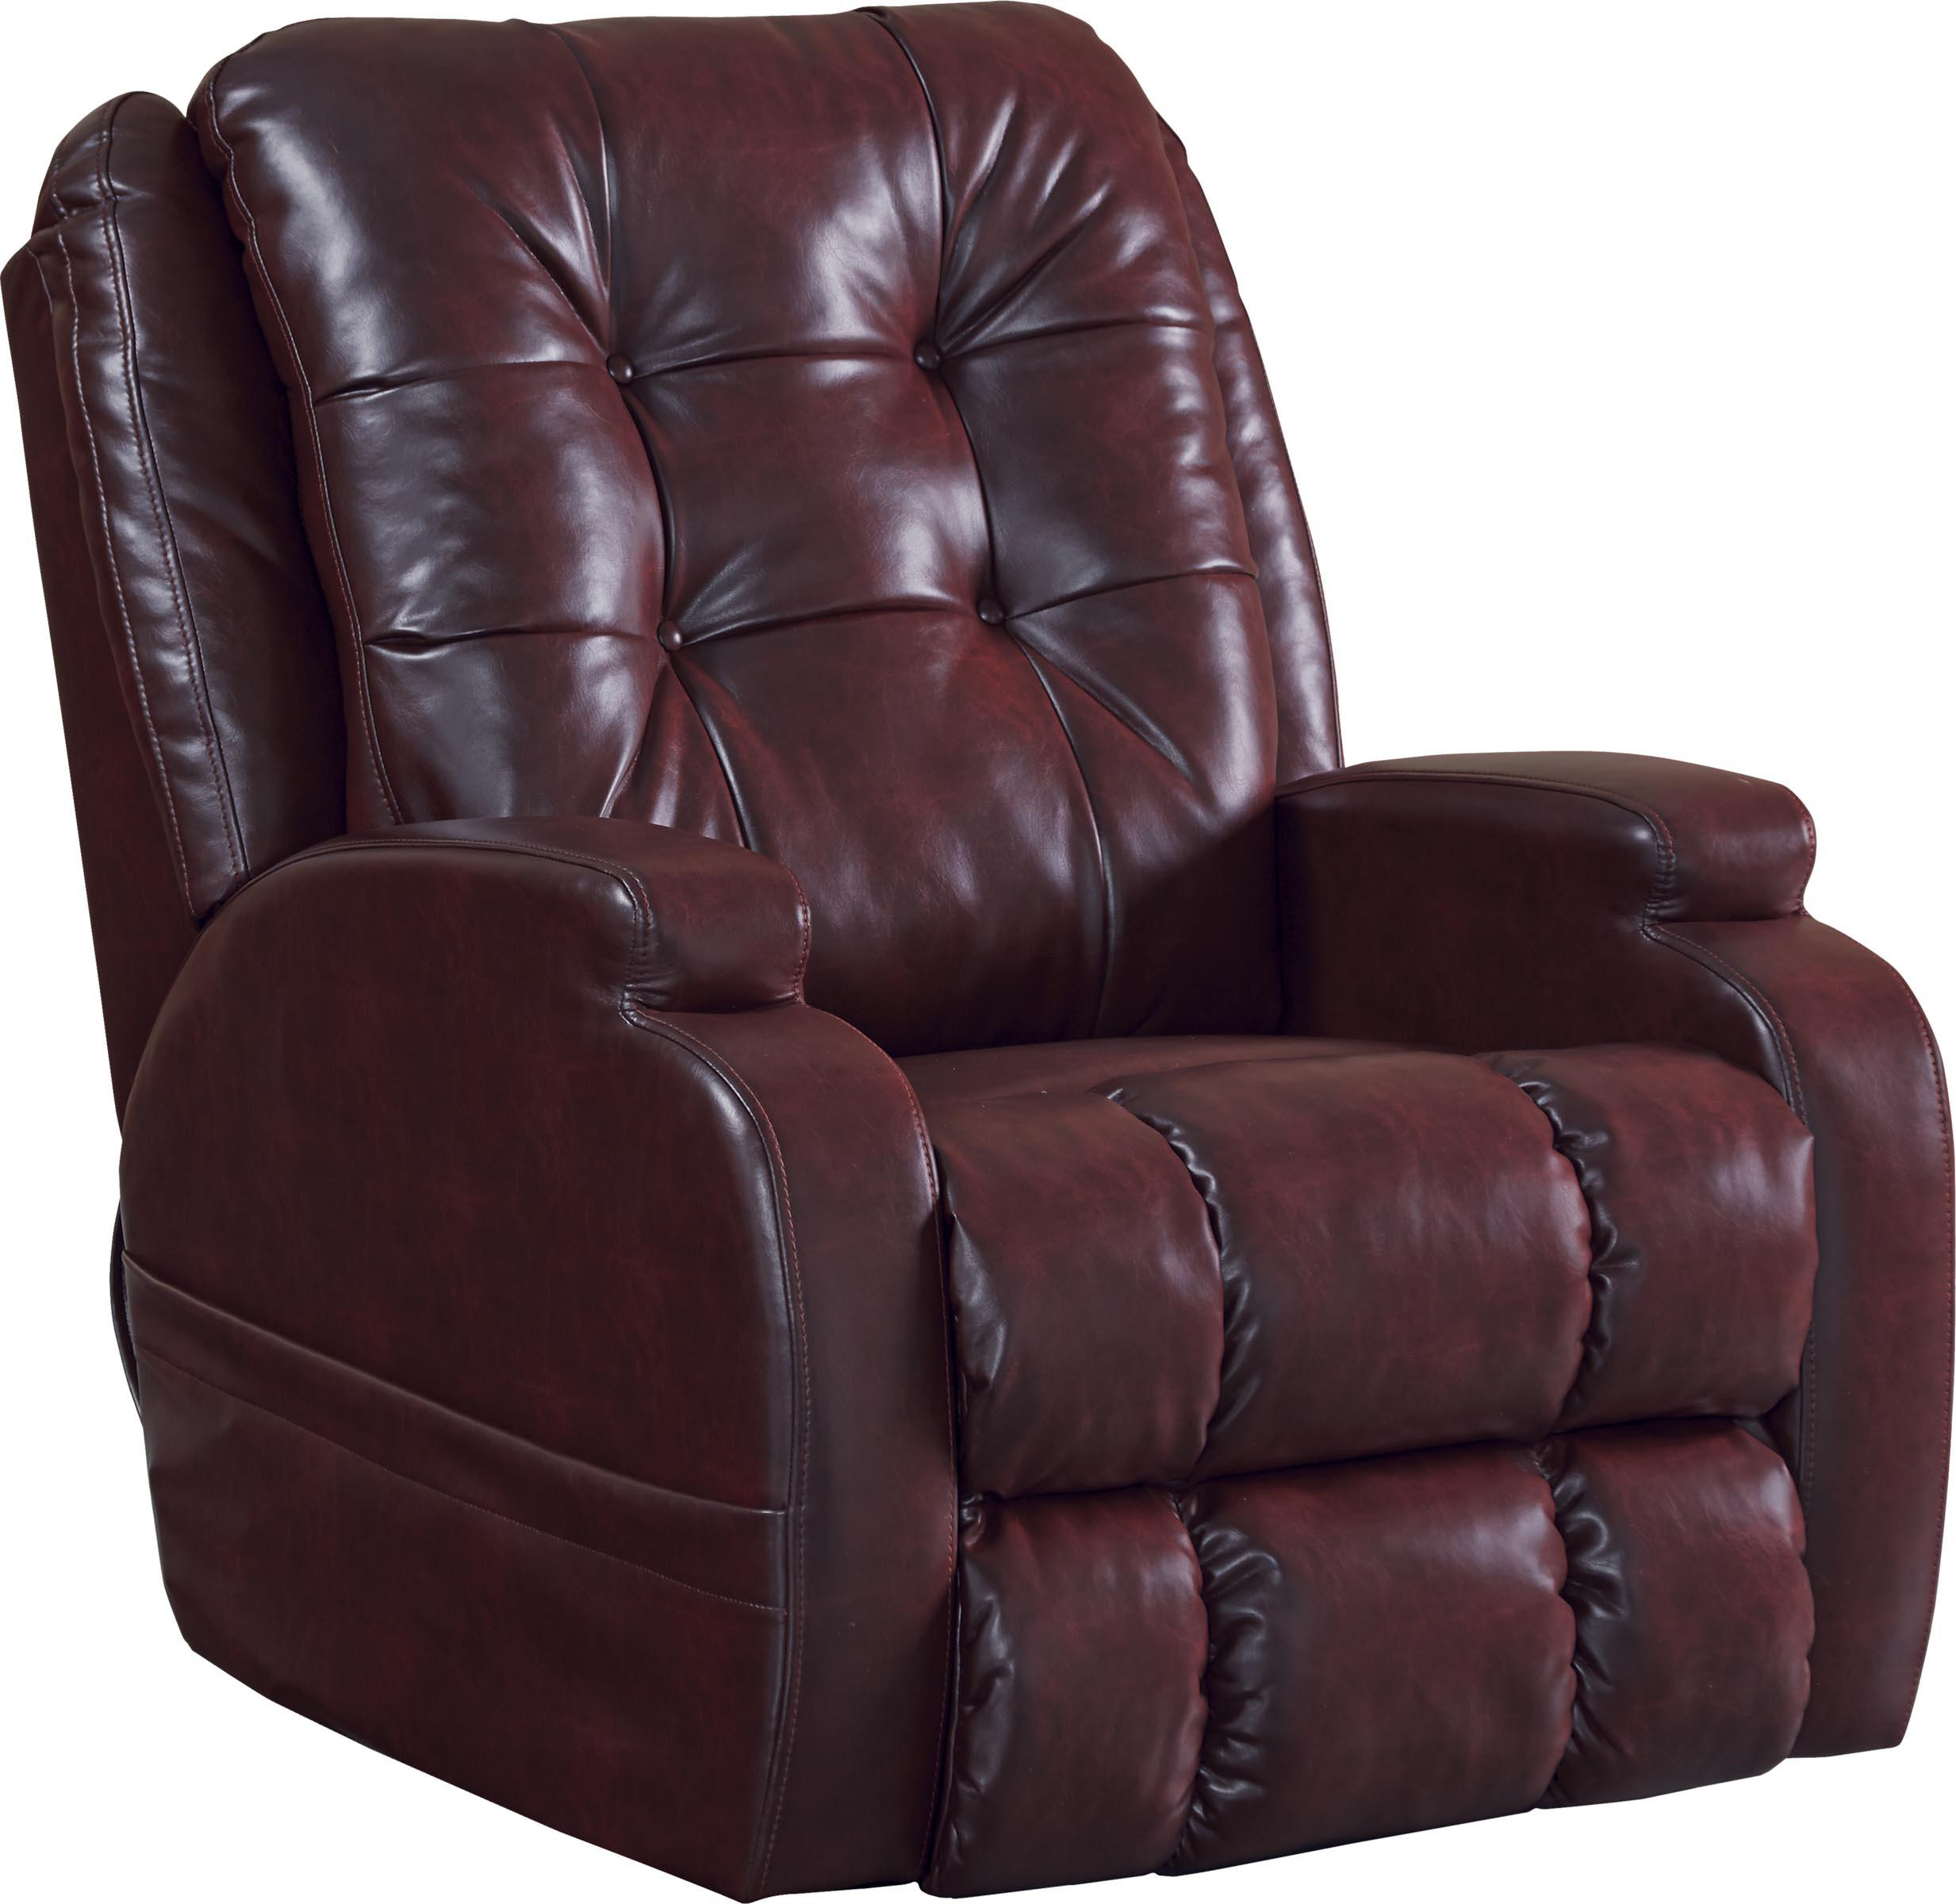 lay flat recliner chairs black leather swivel lounge chair catnapper motion and recliners jenson power lift